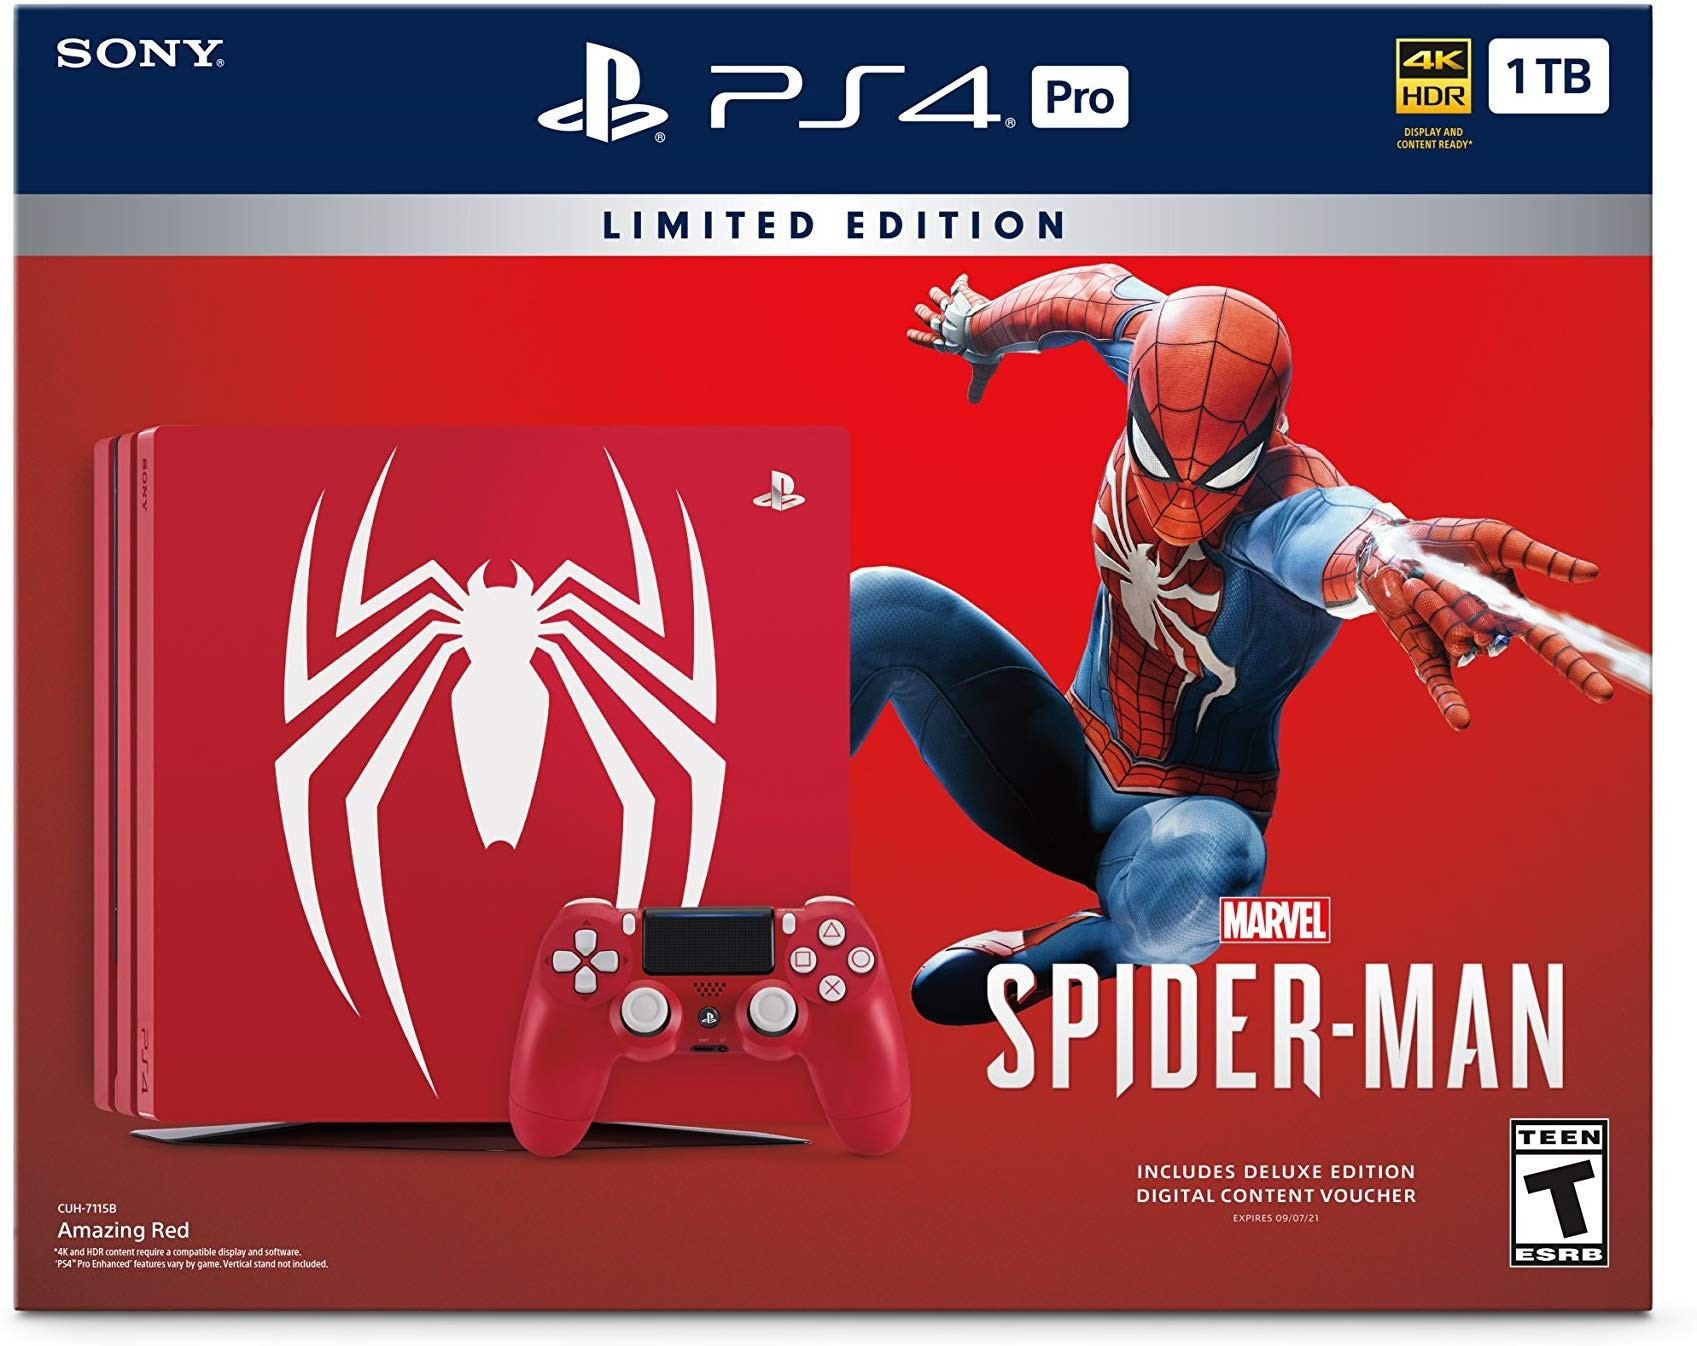 Sony PlayStation 4 Pro 1TB Red Limited Edition Bundle + игра Marvel Человек-паук